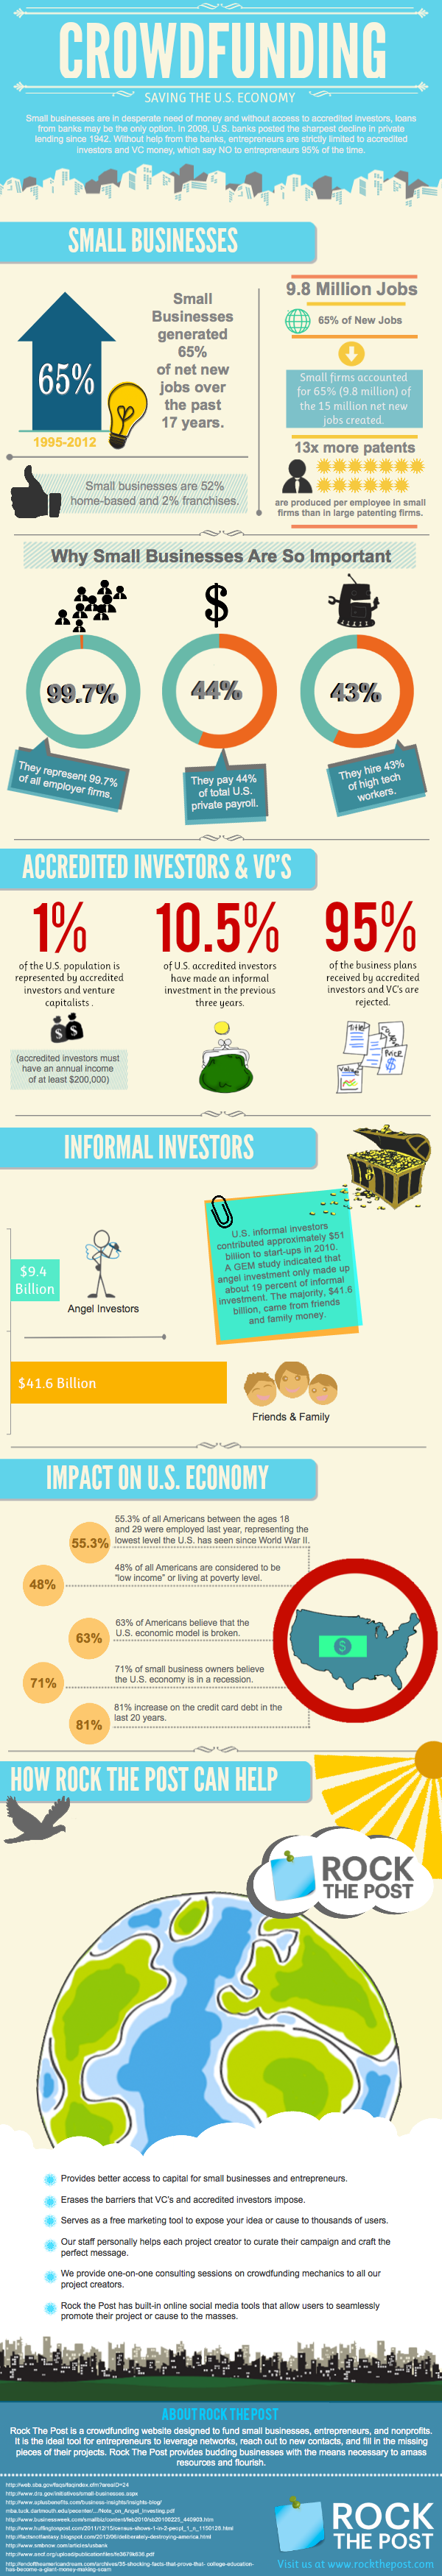 Saving the US Economy-infographic